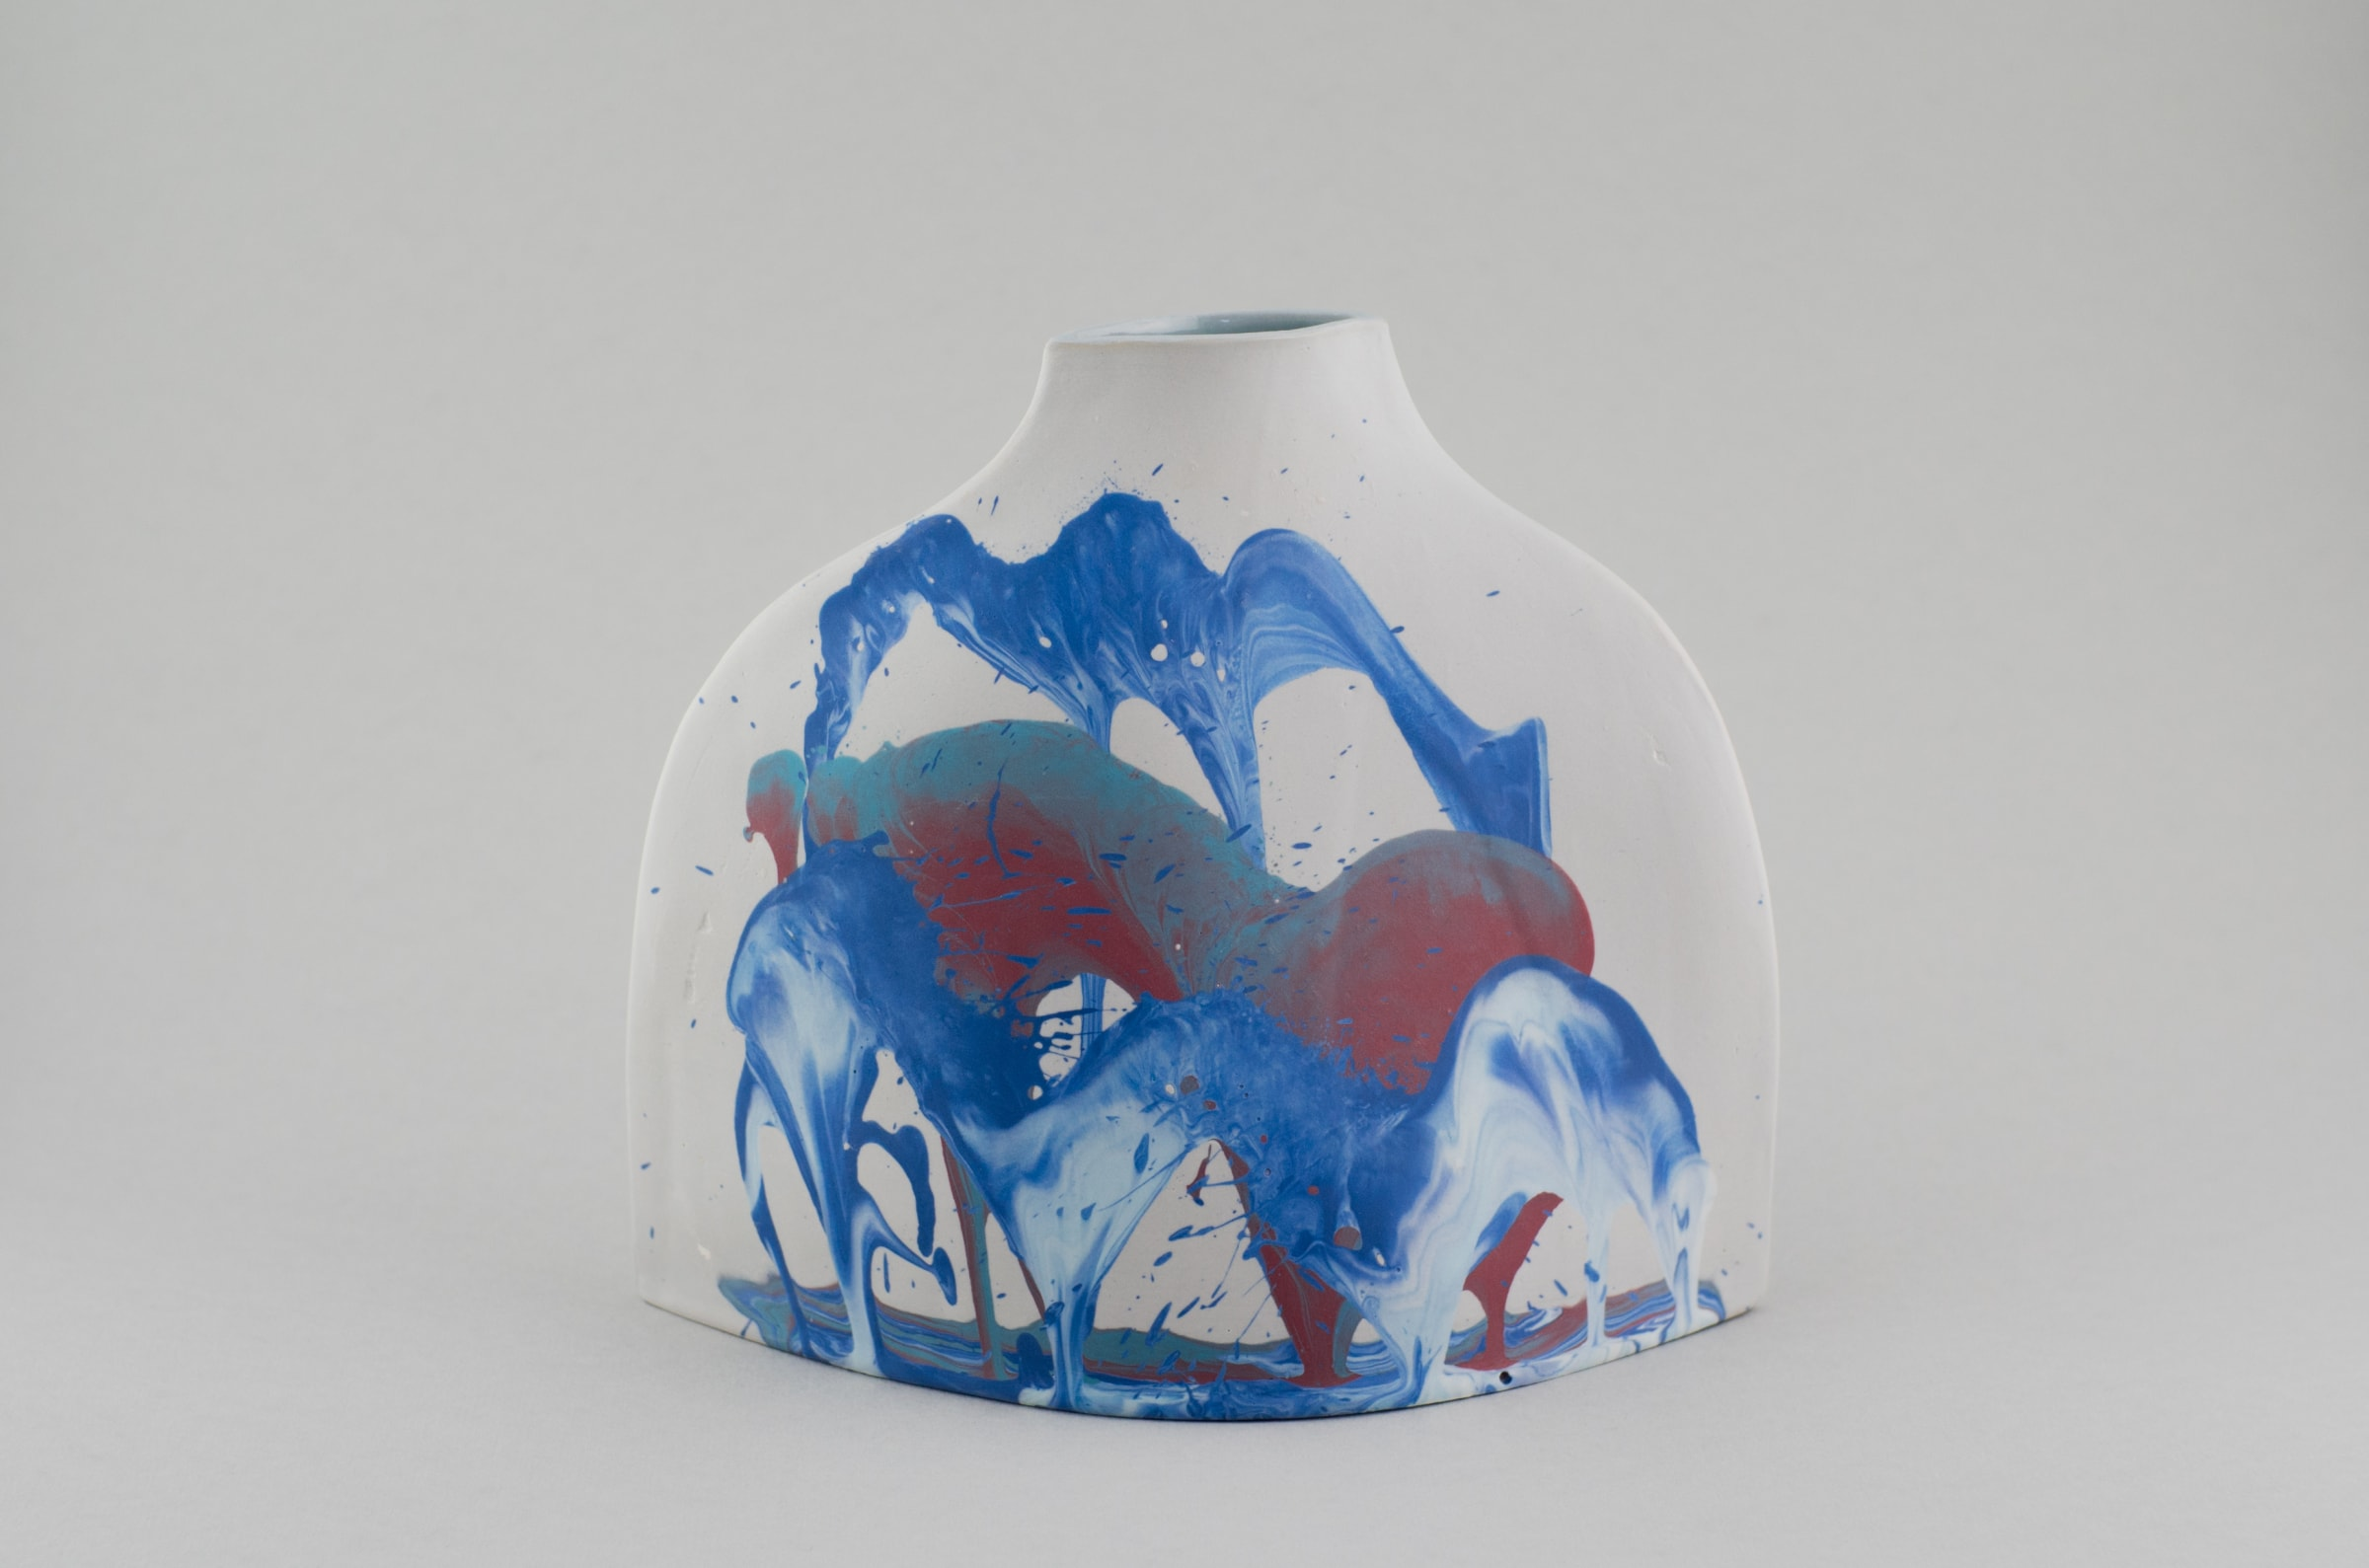 """<span class=""""link fancybox-details-link""""><a href=""""/artists/219-james-pegg/works/6785-james-pegg-shoulder-vase-2019/"""">View Detail Page</a></span><div class=""""artist""""><strong>James Pegg</strong></div> <div class=""""title""""><em>Shoulder Vase</em>, 2019</div> <div class=""""medium"""">action-cast stained porcelain with glazed interior <br />  (in collaboration with Lucia Fraser)</div> <div class=""""dimensions"""">h 20 cm x w 17.5 cm</div><div class=""""price"""">£205.00</div><div class=""""copyright_line"""">OwnArt: £ 20.50 x 10 Months, 0% APR </div>"""